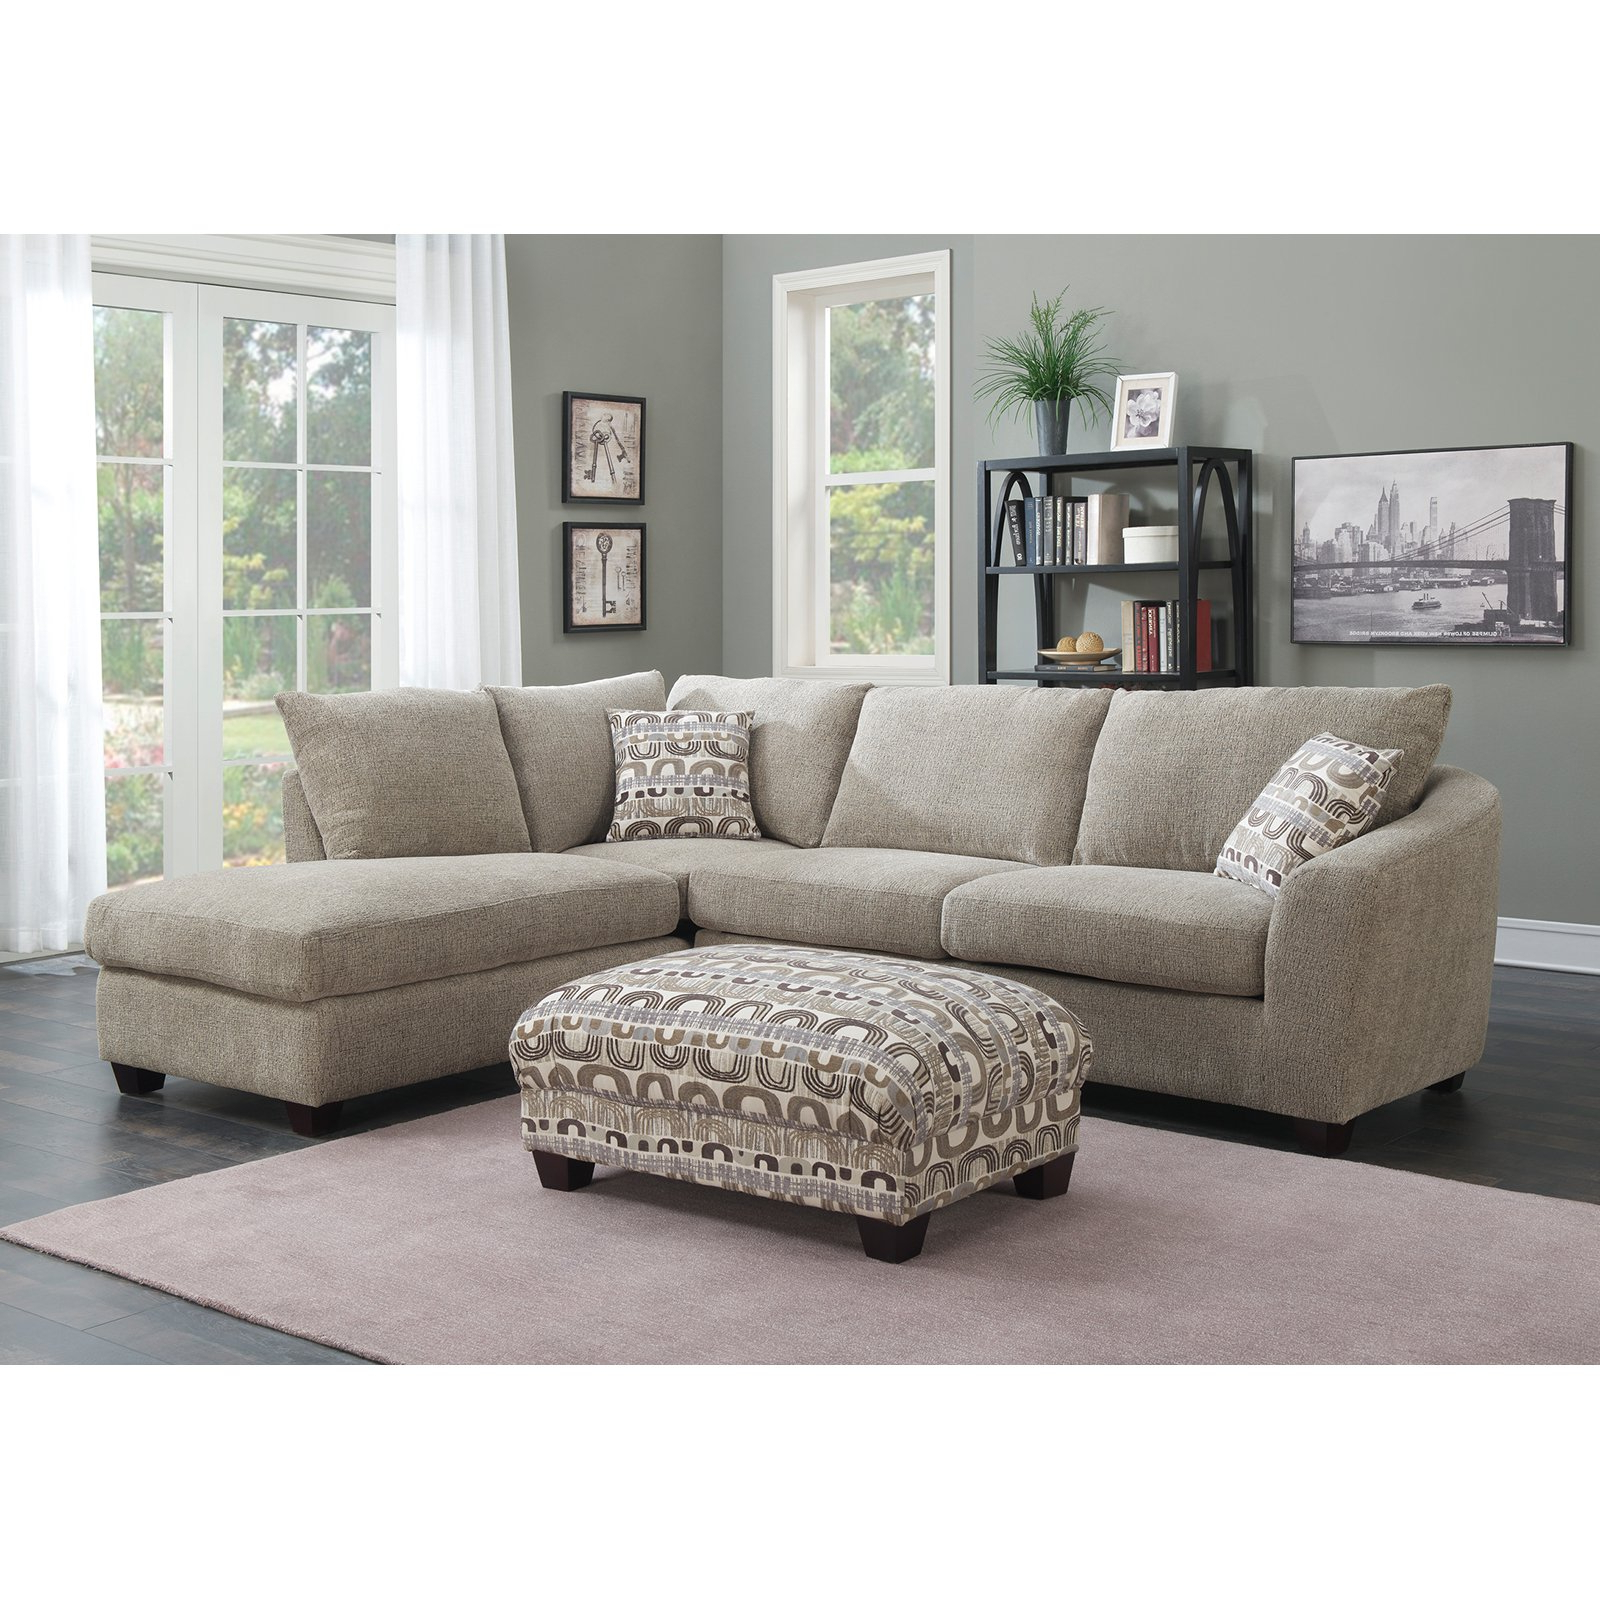 2 Piece Sectional With Chaise – Tidex Within Famous Delano 2 Piece Sectionals With Laf Oversized Chaise (View 6 of 20)